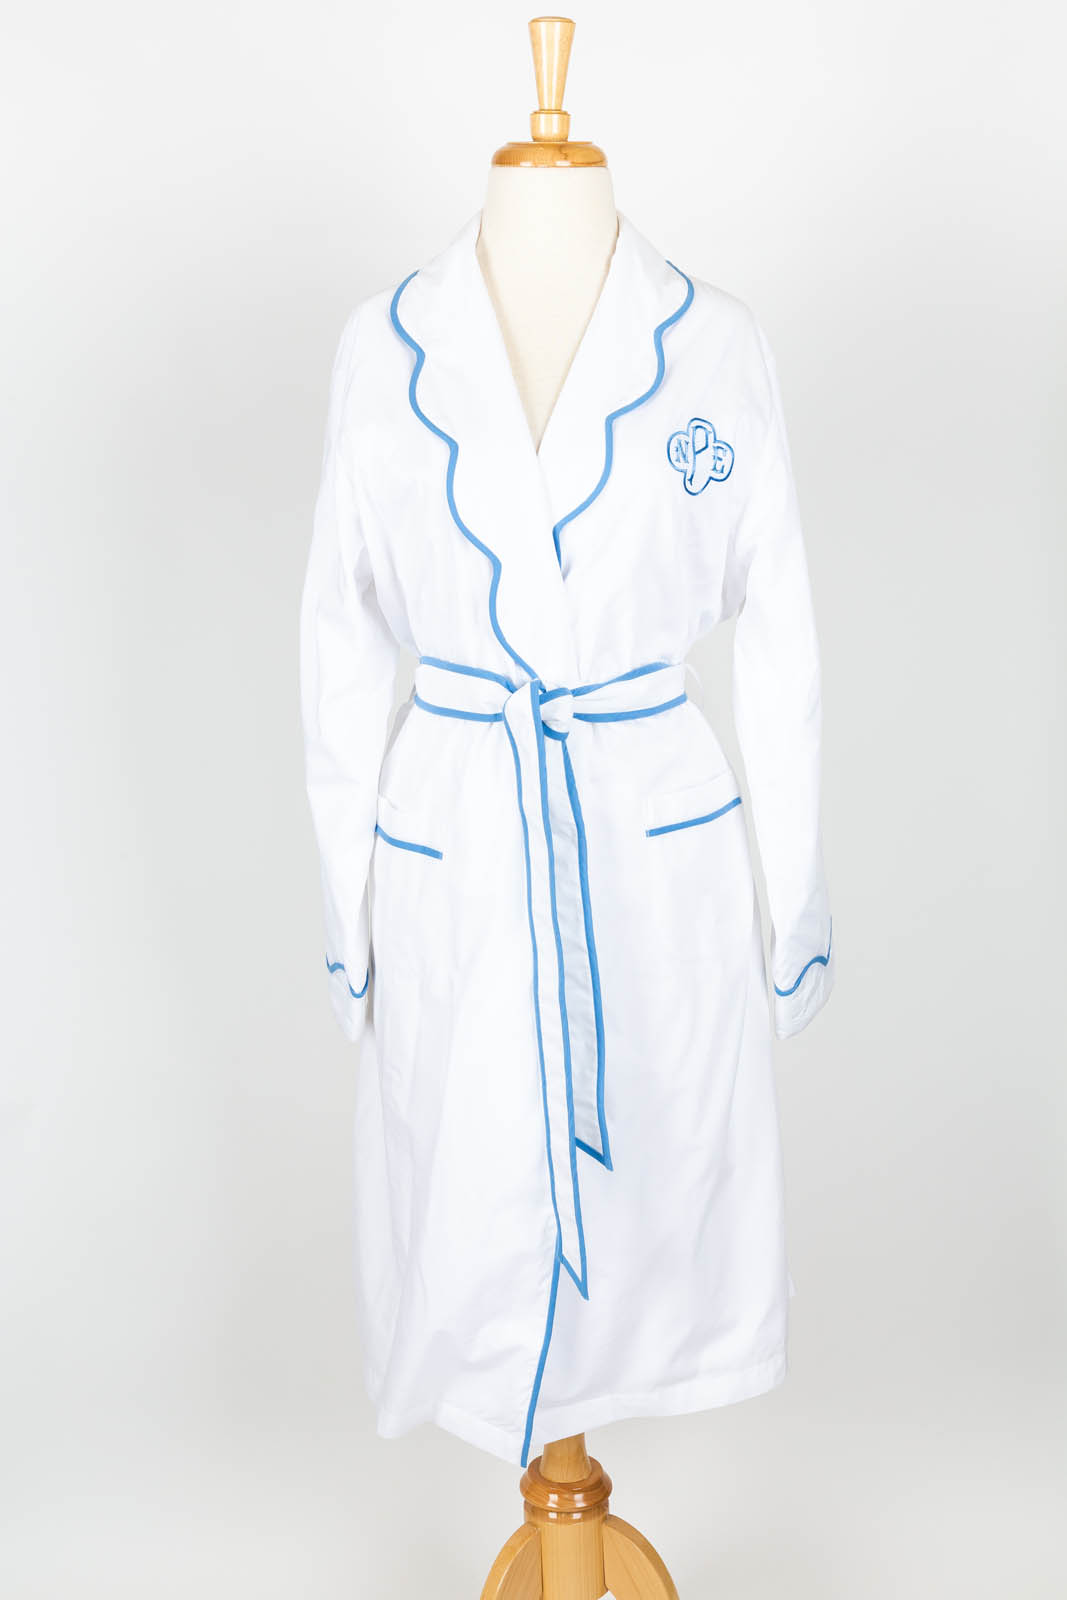 Scallop collar white poplin robe with Kelley Monogram (available unlined or terry jersey lined)